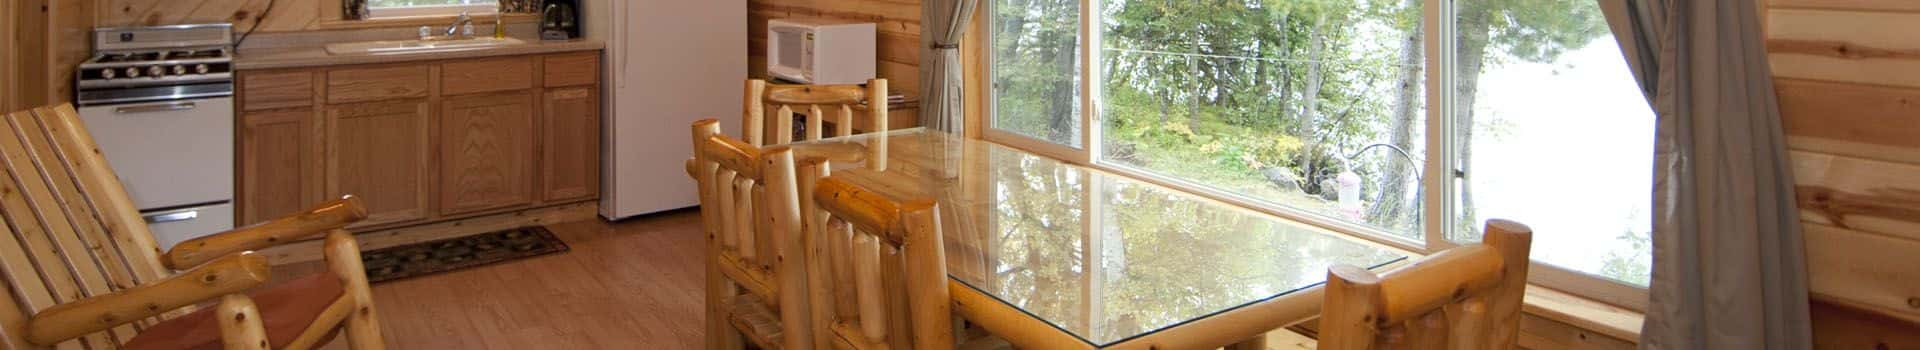 lakeside-cabins-for-rent-ely-mn